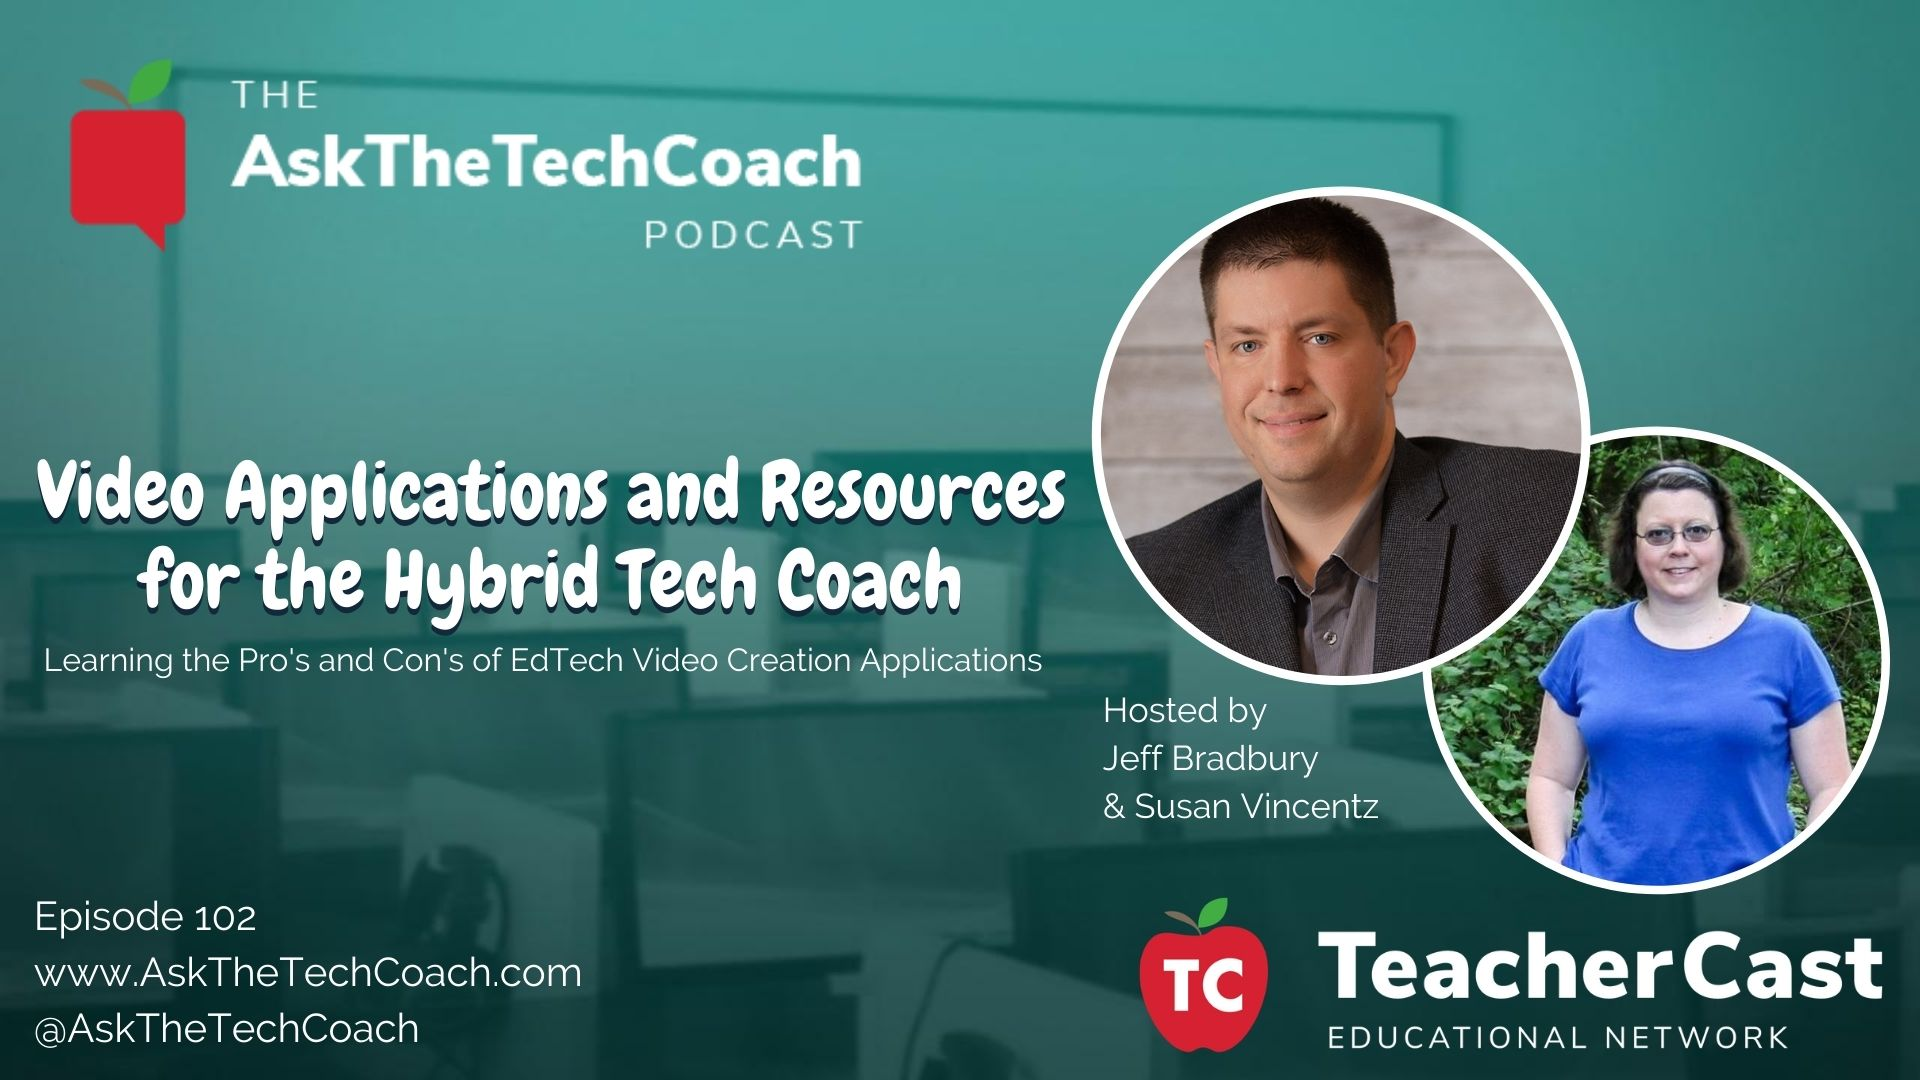 Video Resources for the Tech Coach